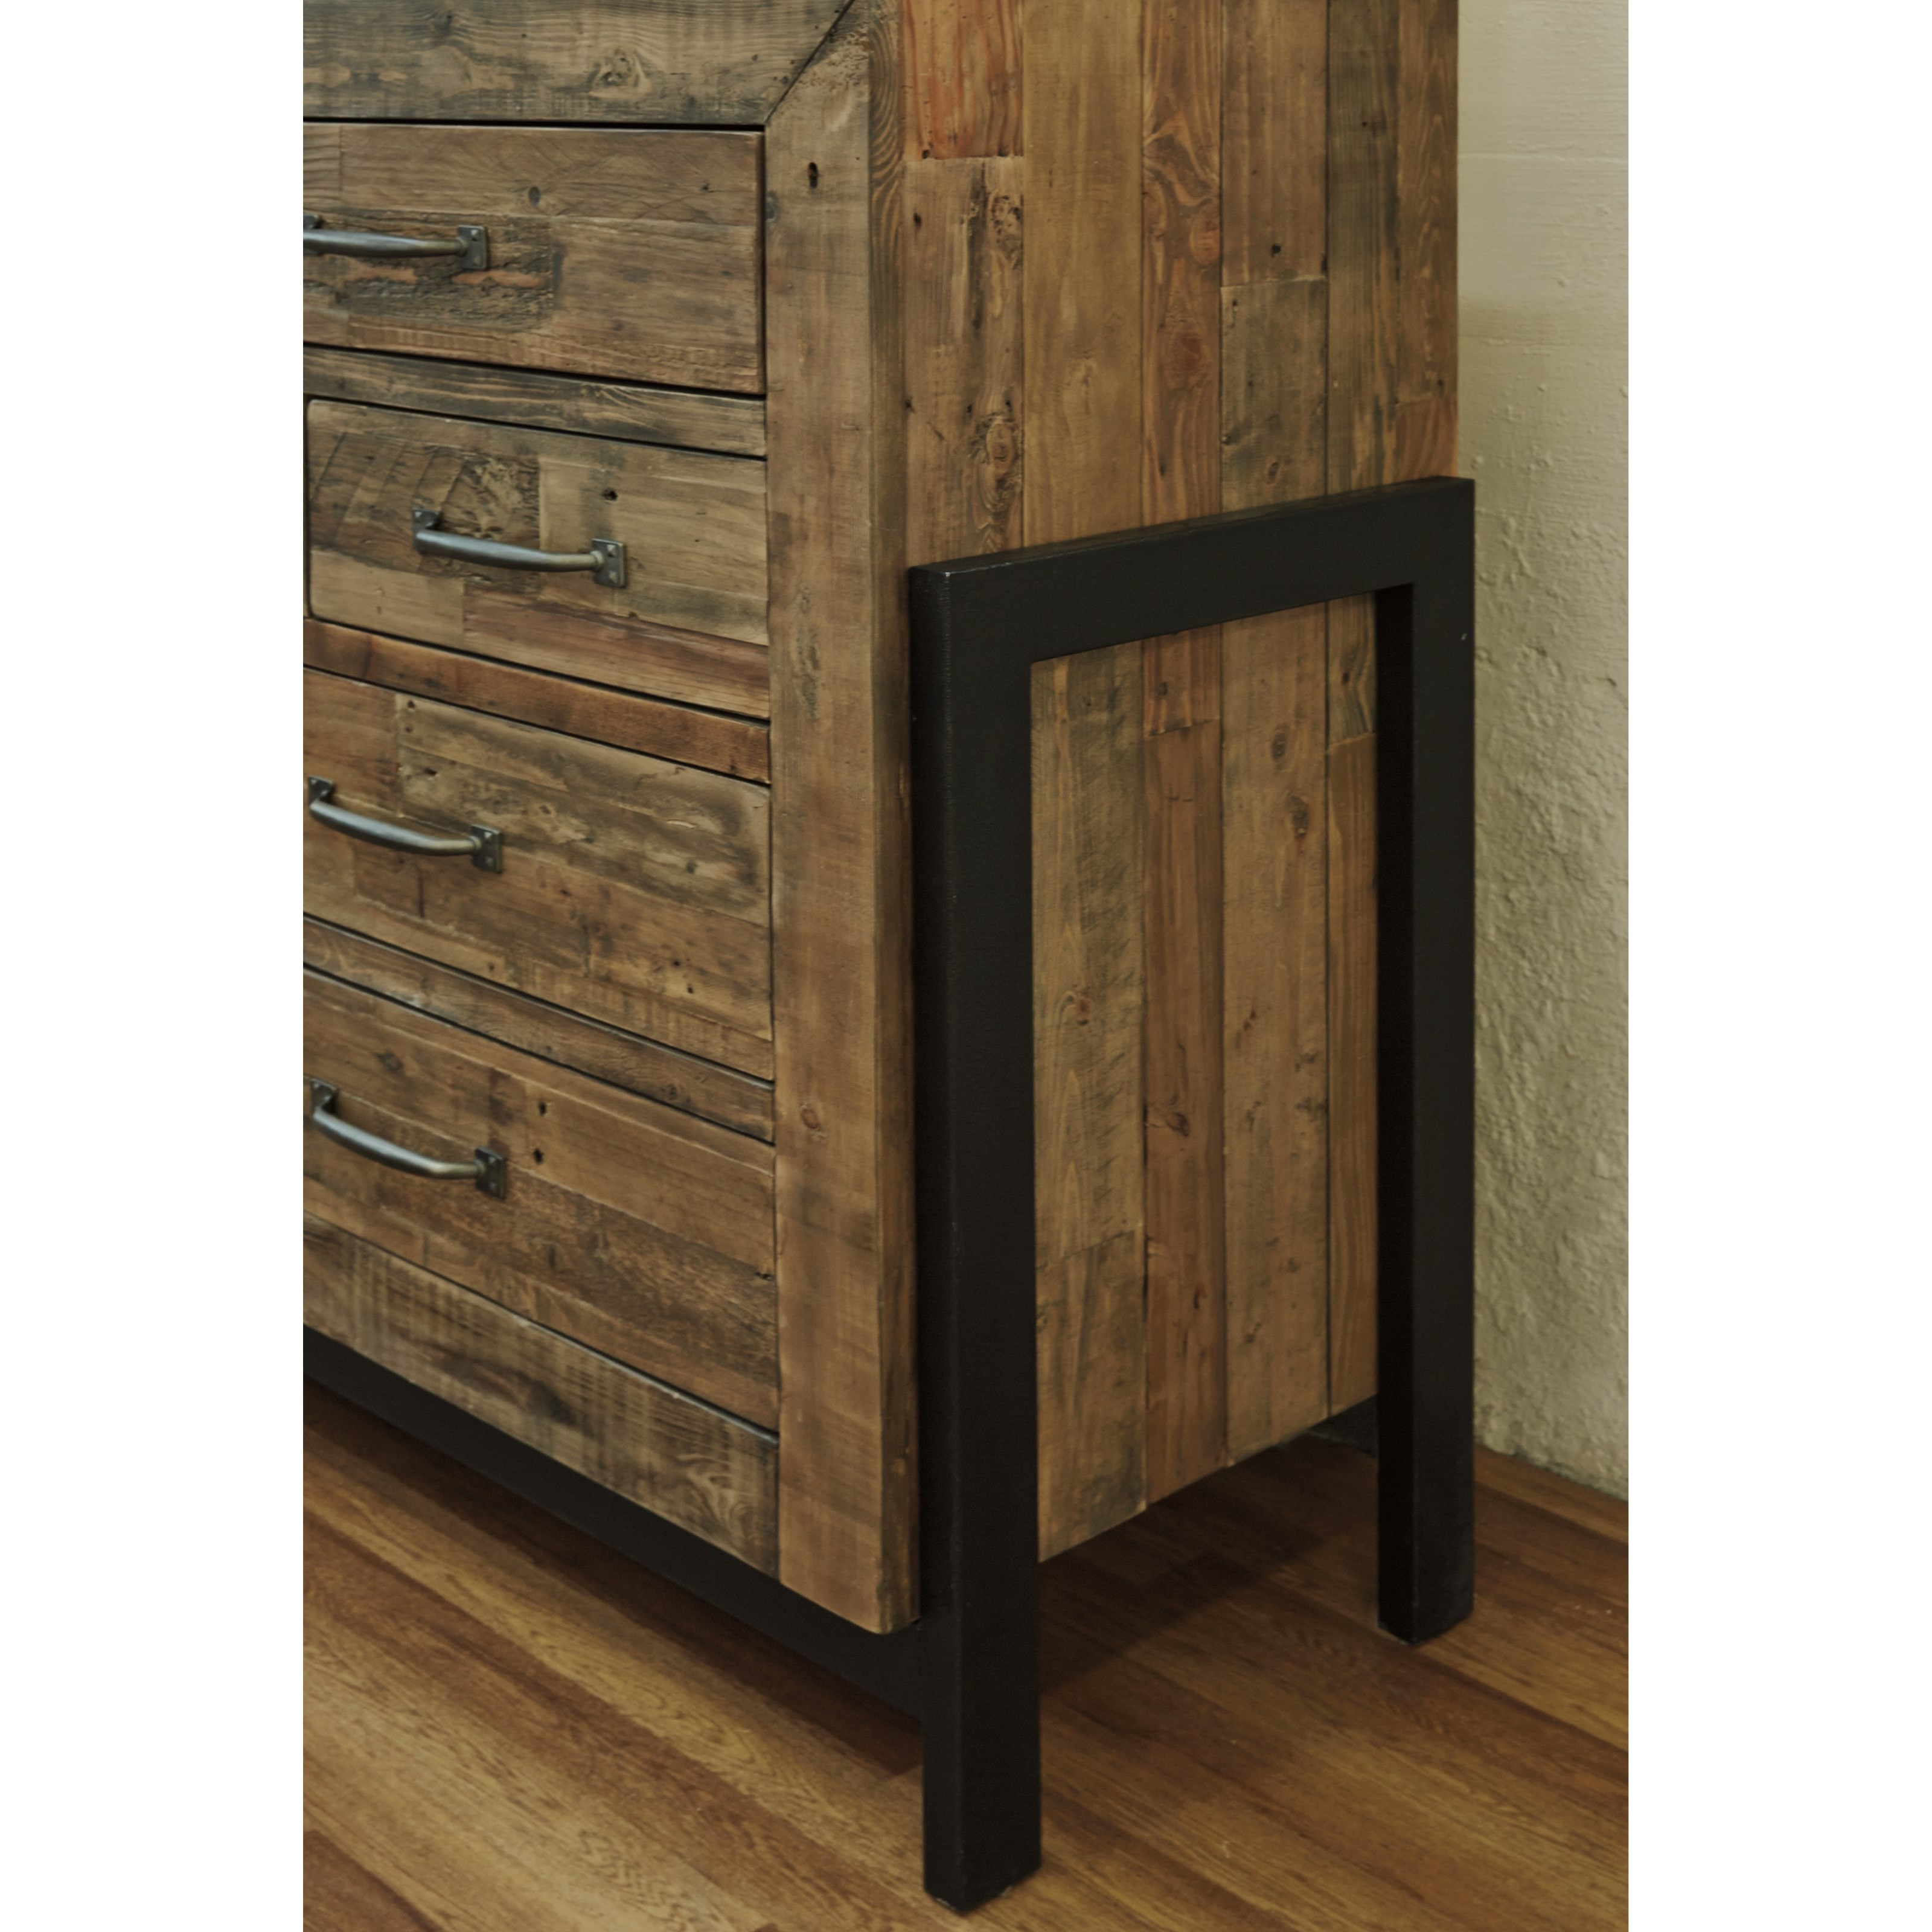 Signature Design By Ashley Sommerford B775 31 Reclaimed Pine Solid Wood Dresser With Metal Frame